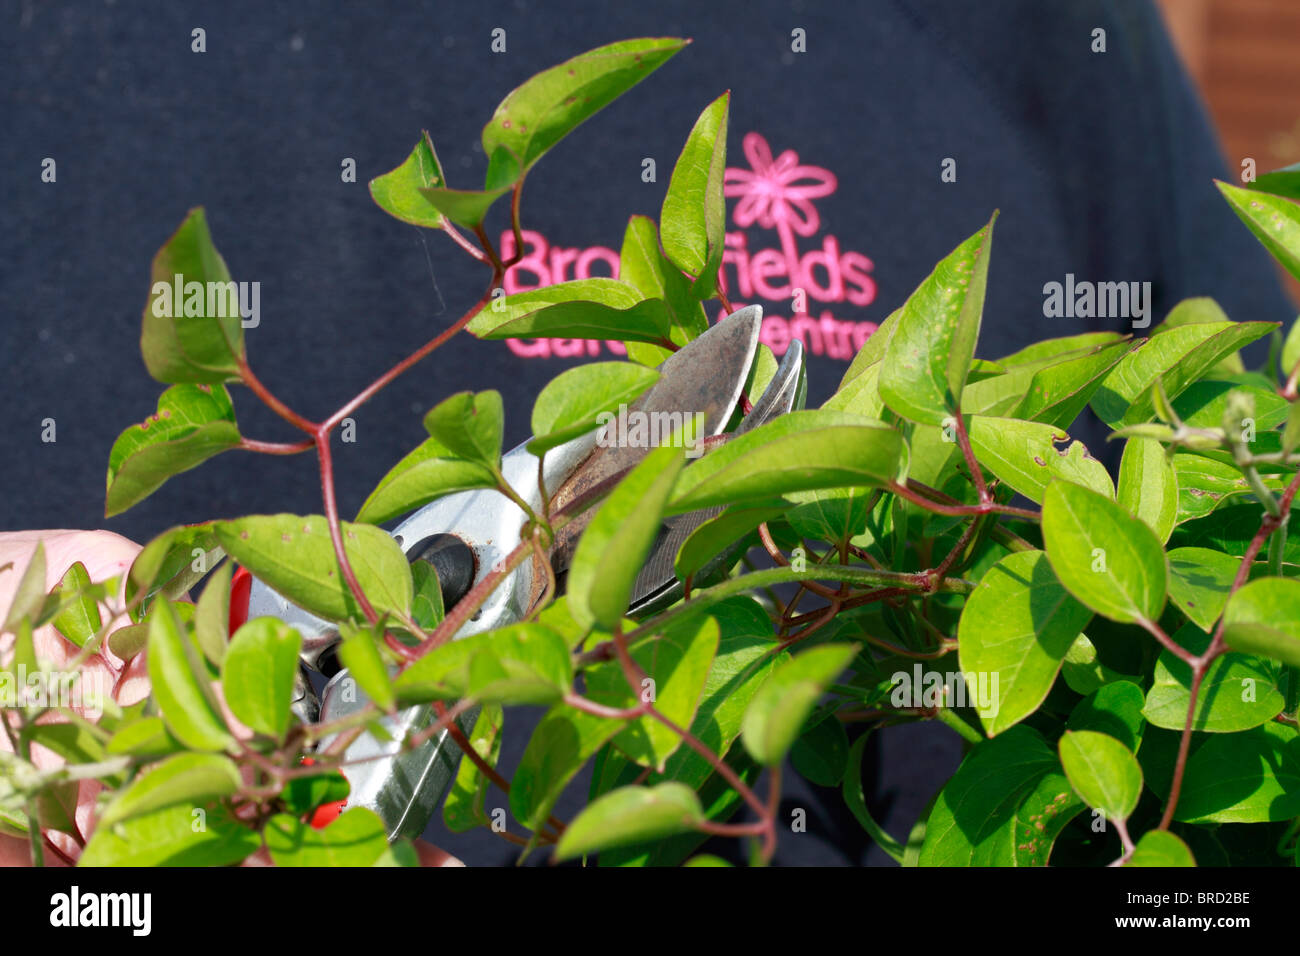 Using secateurs to trim unwanted and dead growth winter jasmine using secateurs to trim unwanted and dead growth winter jasmine jasminum nudiflorum izmirmasajfo